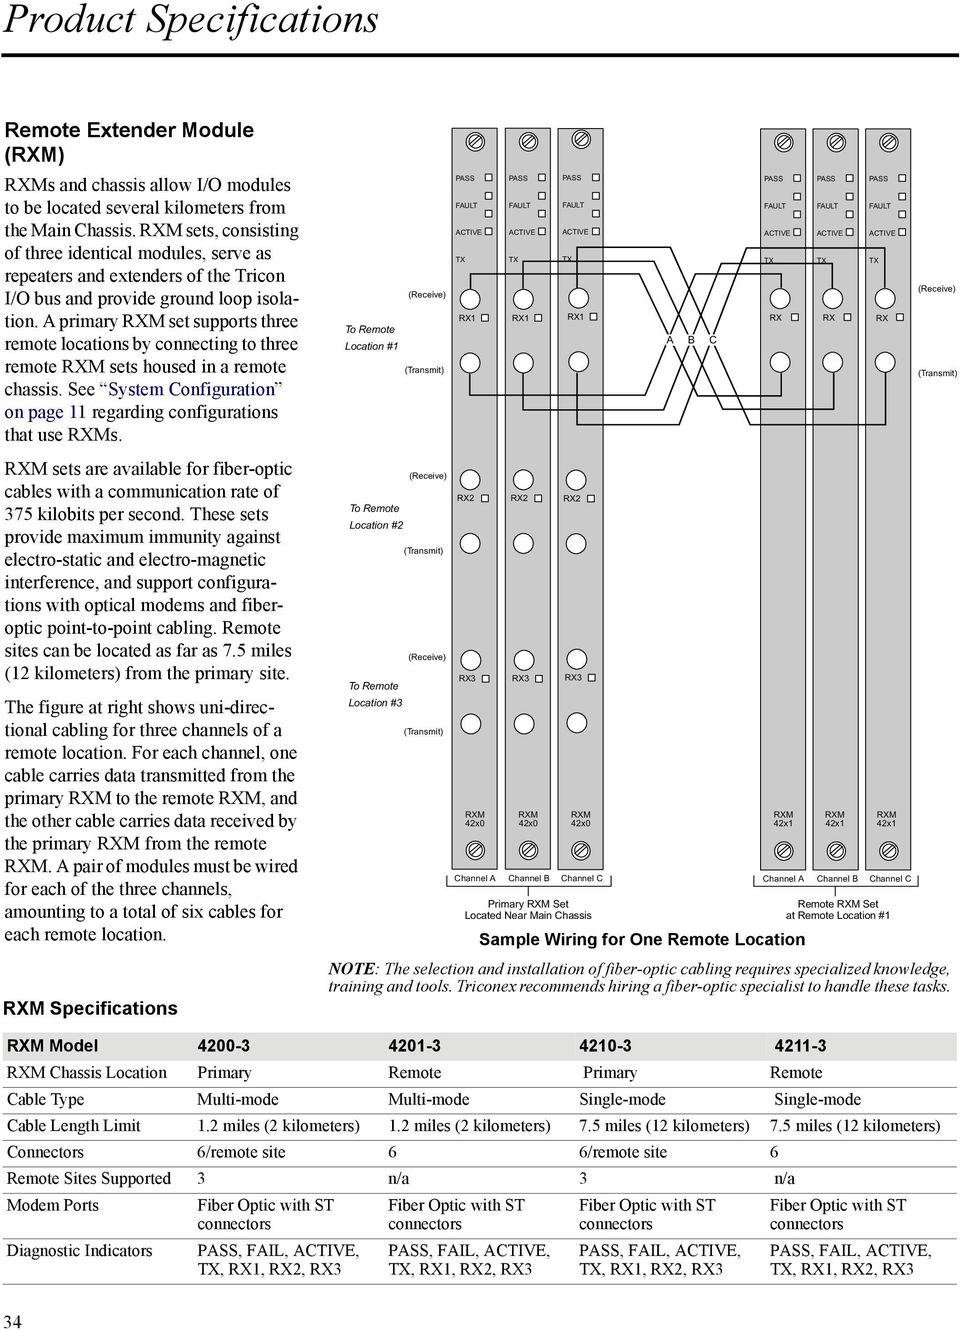 A primary RXM set supports three remote locations by connecting to three remote RXM sets housed in a remote chassis. See System Configuration on page 11 regarding configurations that use RXMs.